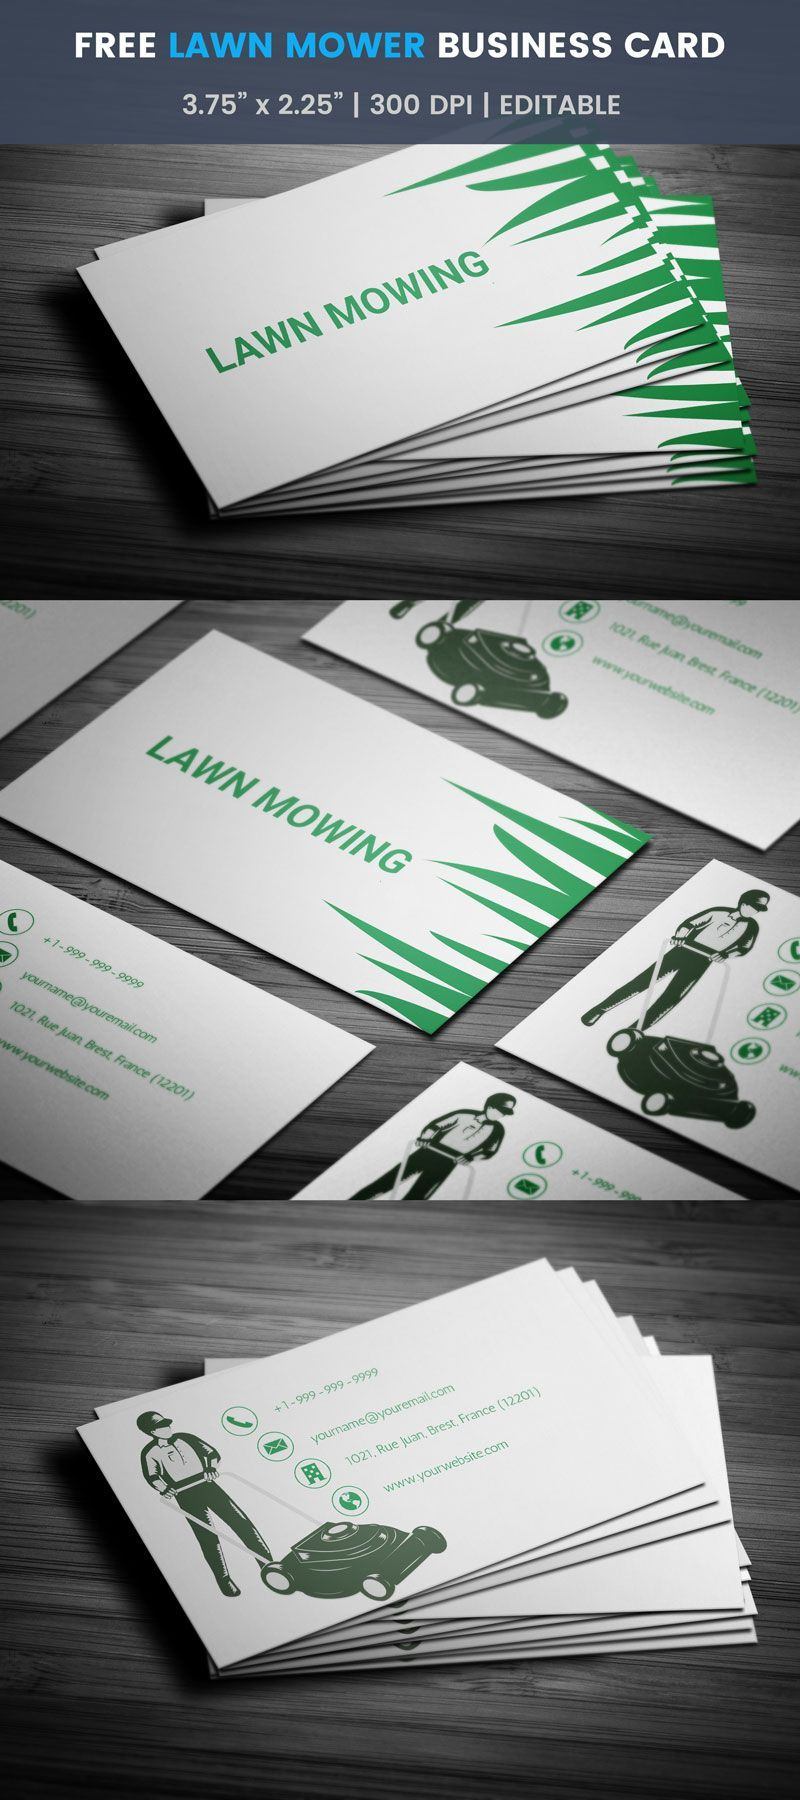 Professional Lawn Care Landscaping Business Card Zazzle Com In 2021 Landscaping Business Cards Lawn Care Business Cards Landscaping Business